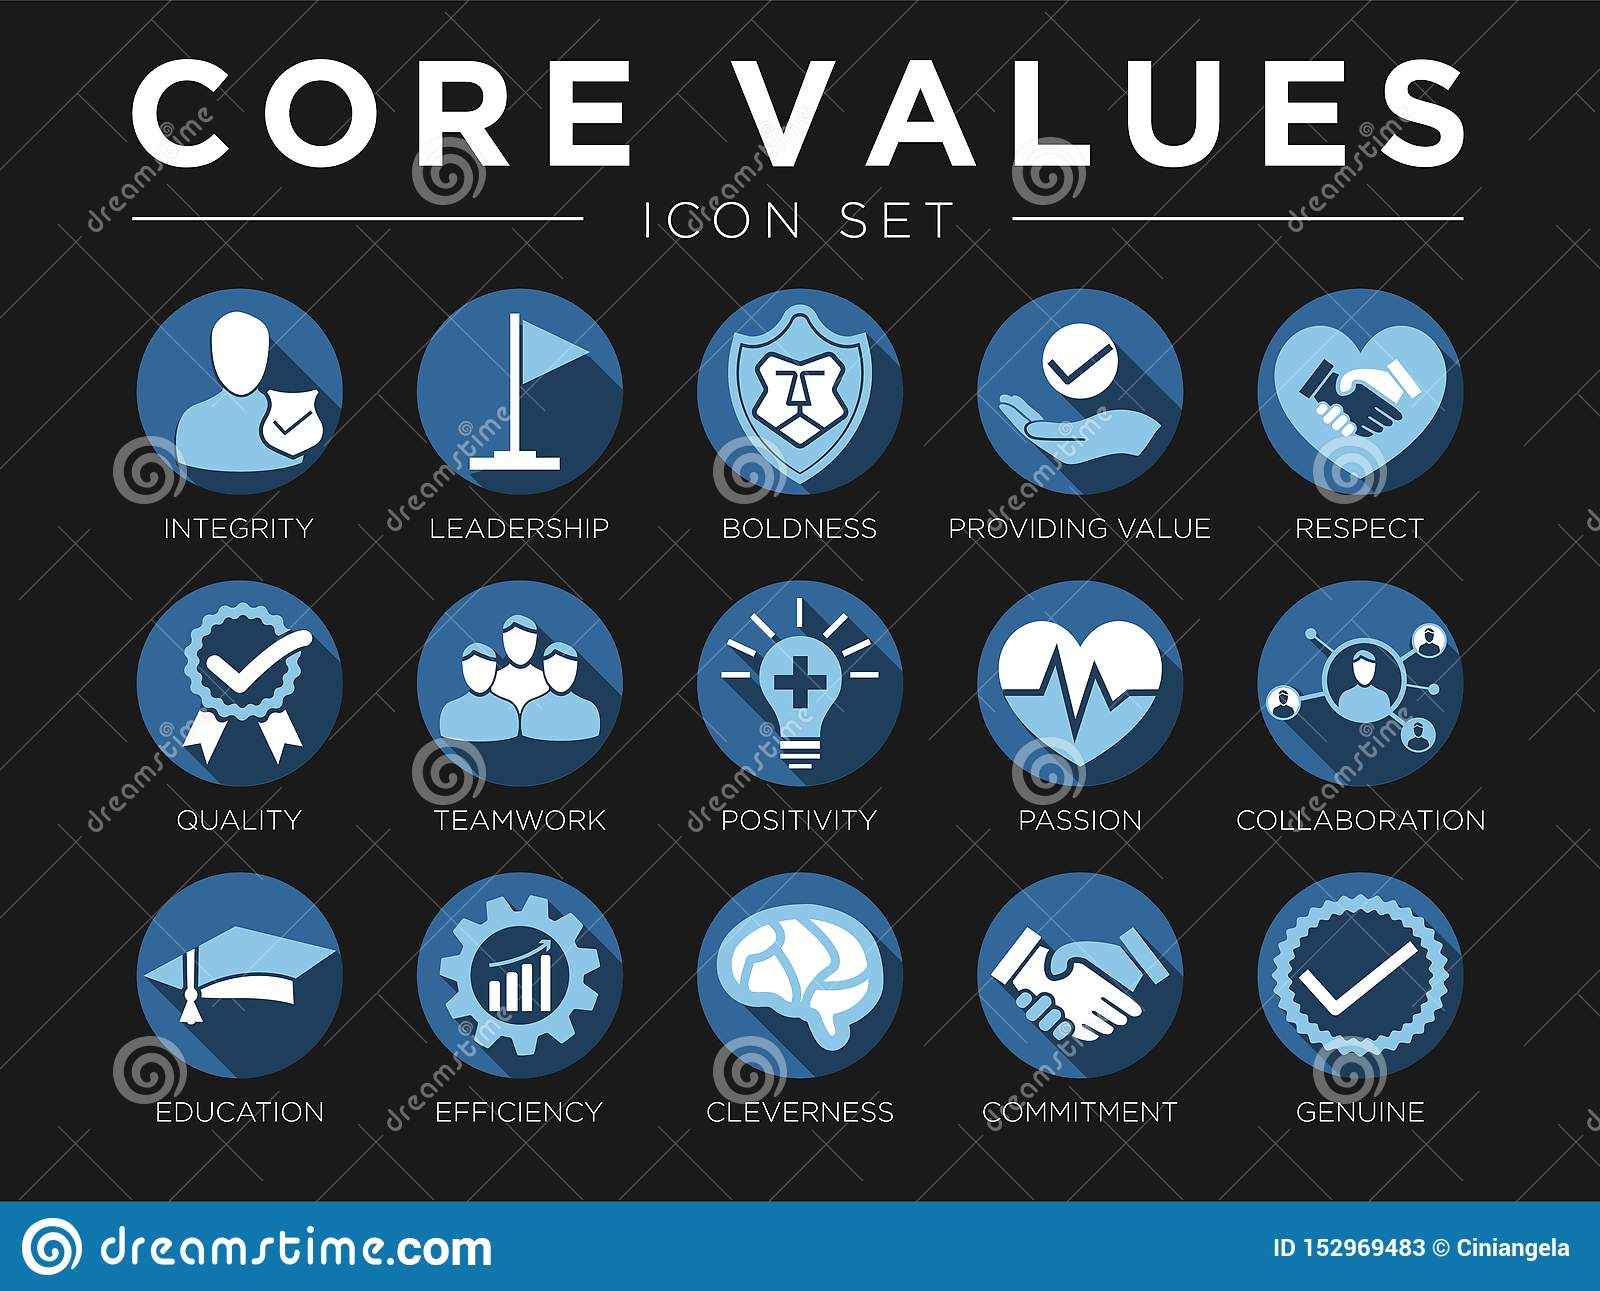 Business Company Values Icon Set. Integrity, Leadership, Boldness, Value, Respect, Quality, Teamwork, Positivity, Passion,